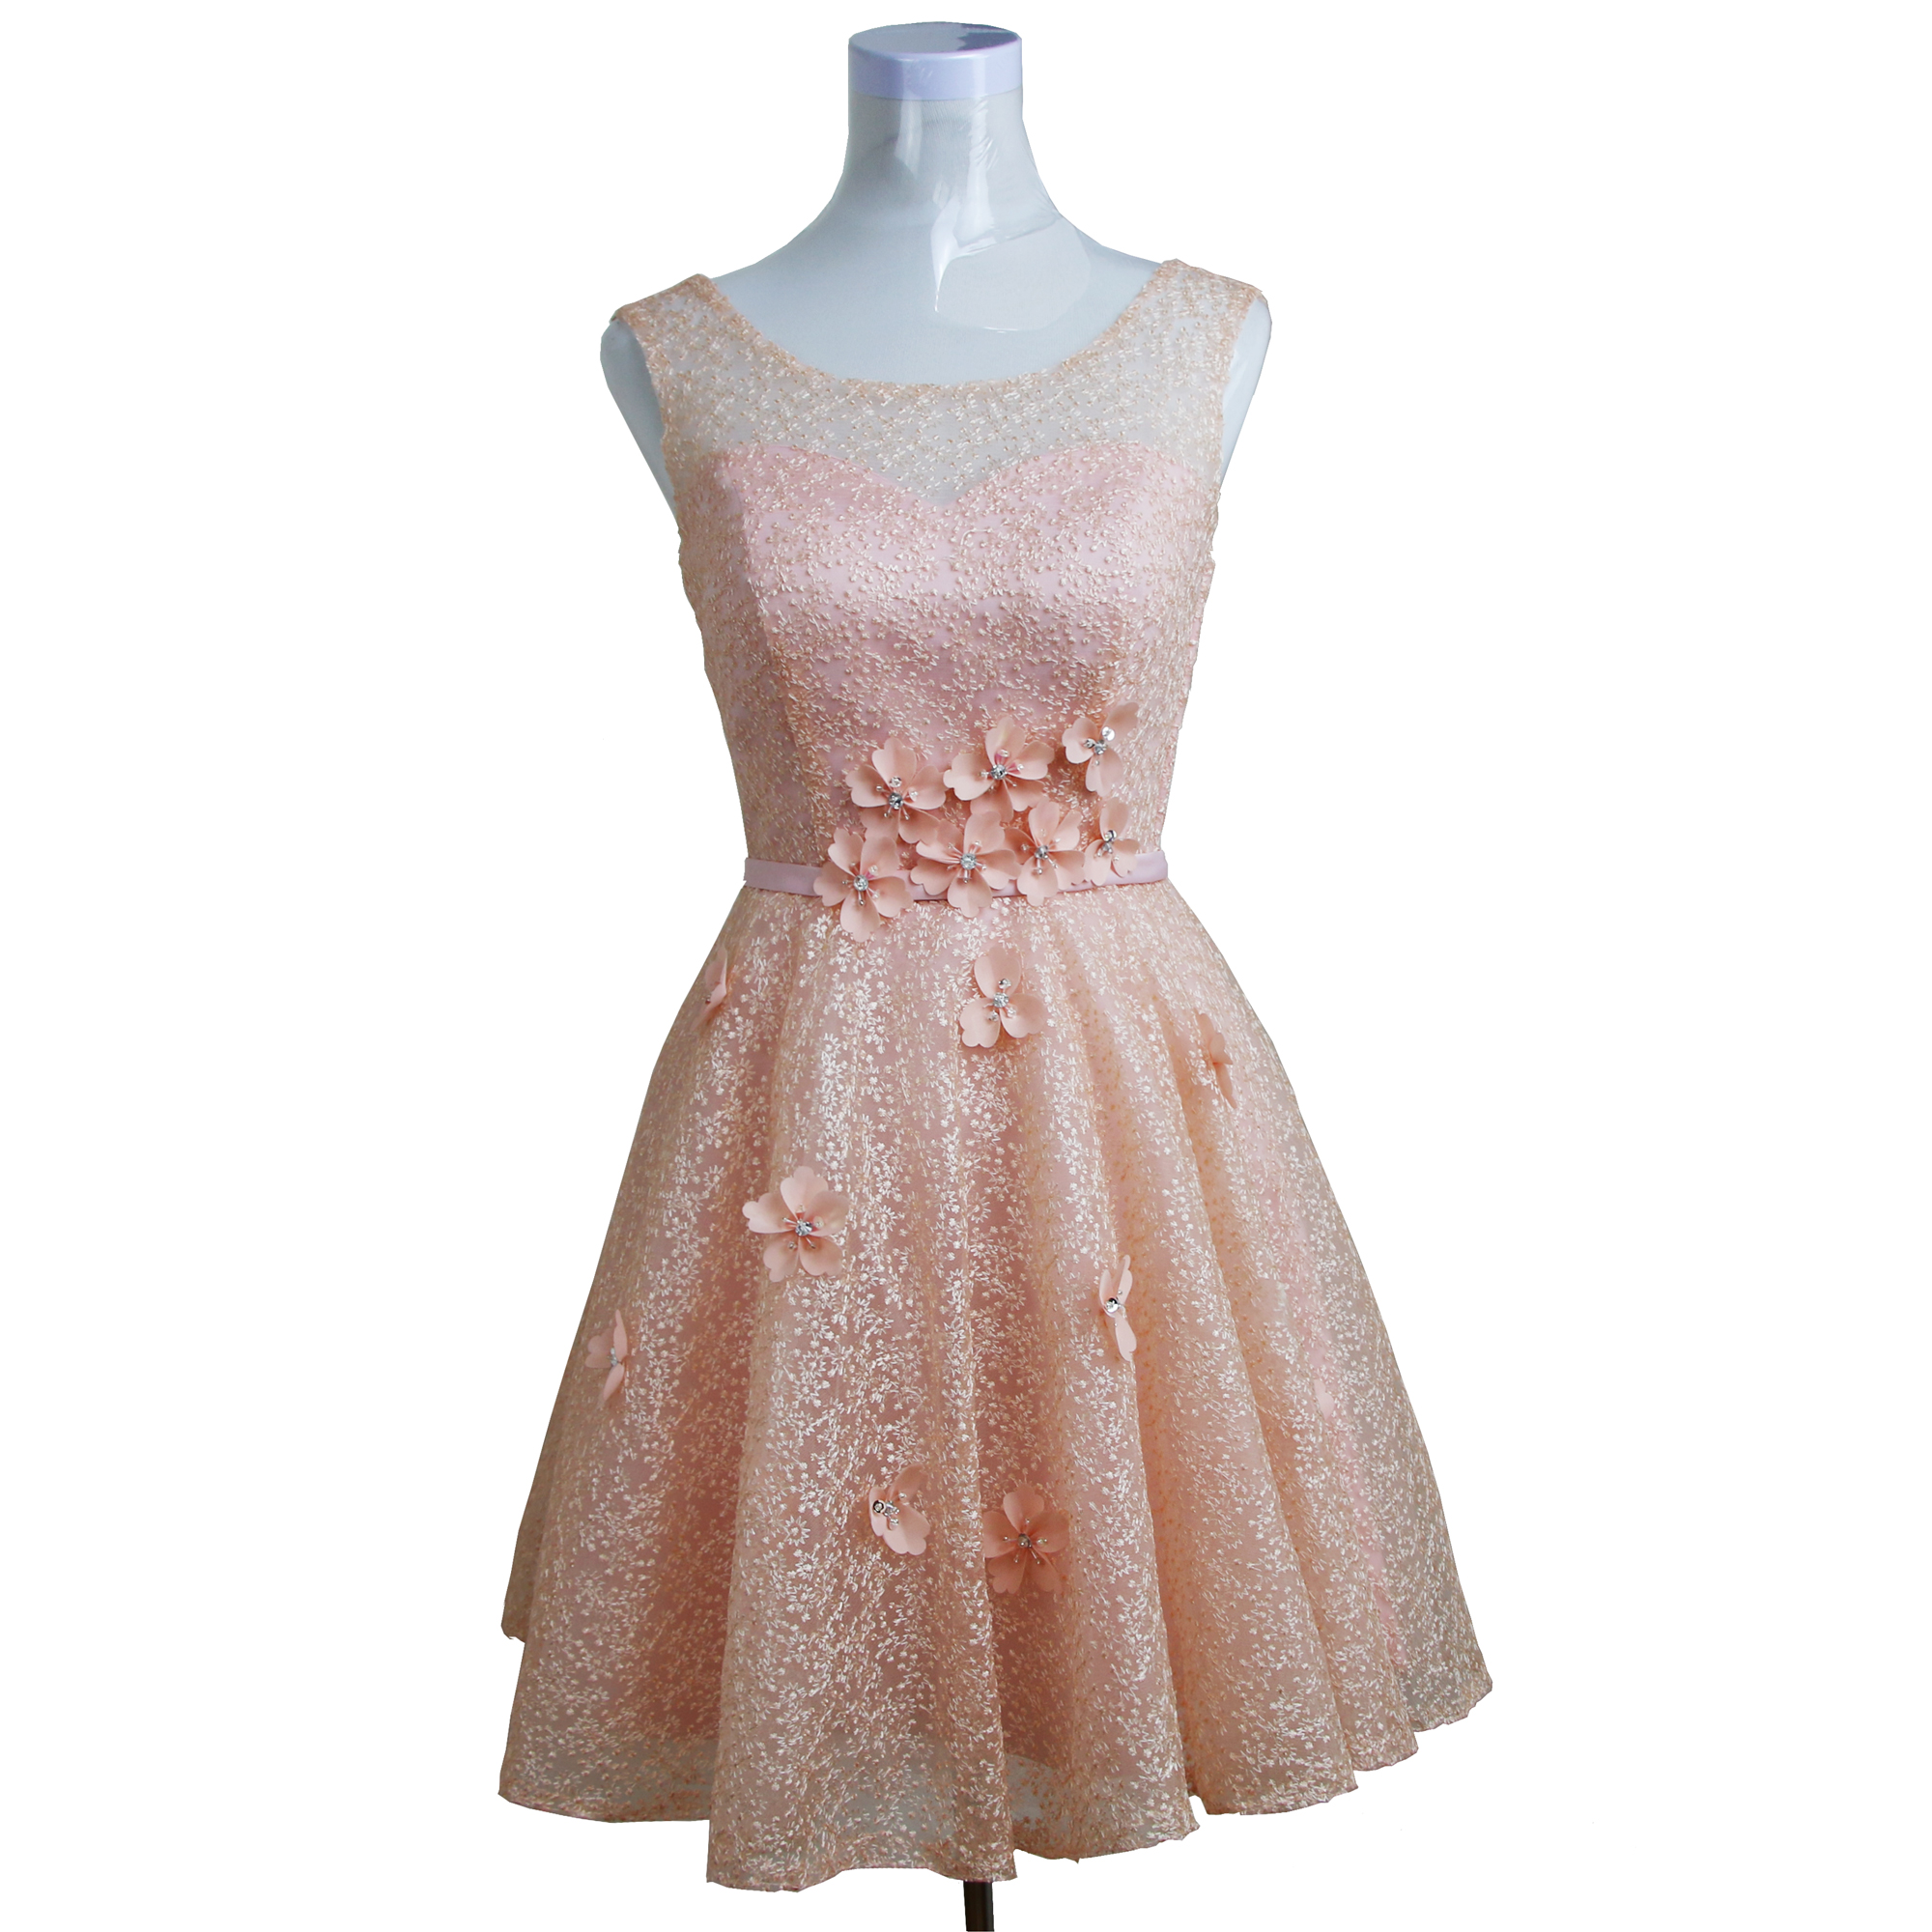 Princess Light Pink Lace Wedding Dress With Off The: Light Pink Lace Floral Appliques Beaded Sleeveless Short